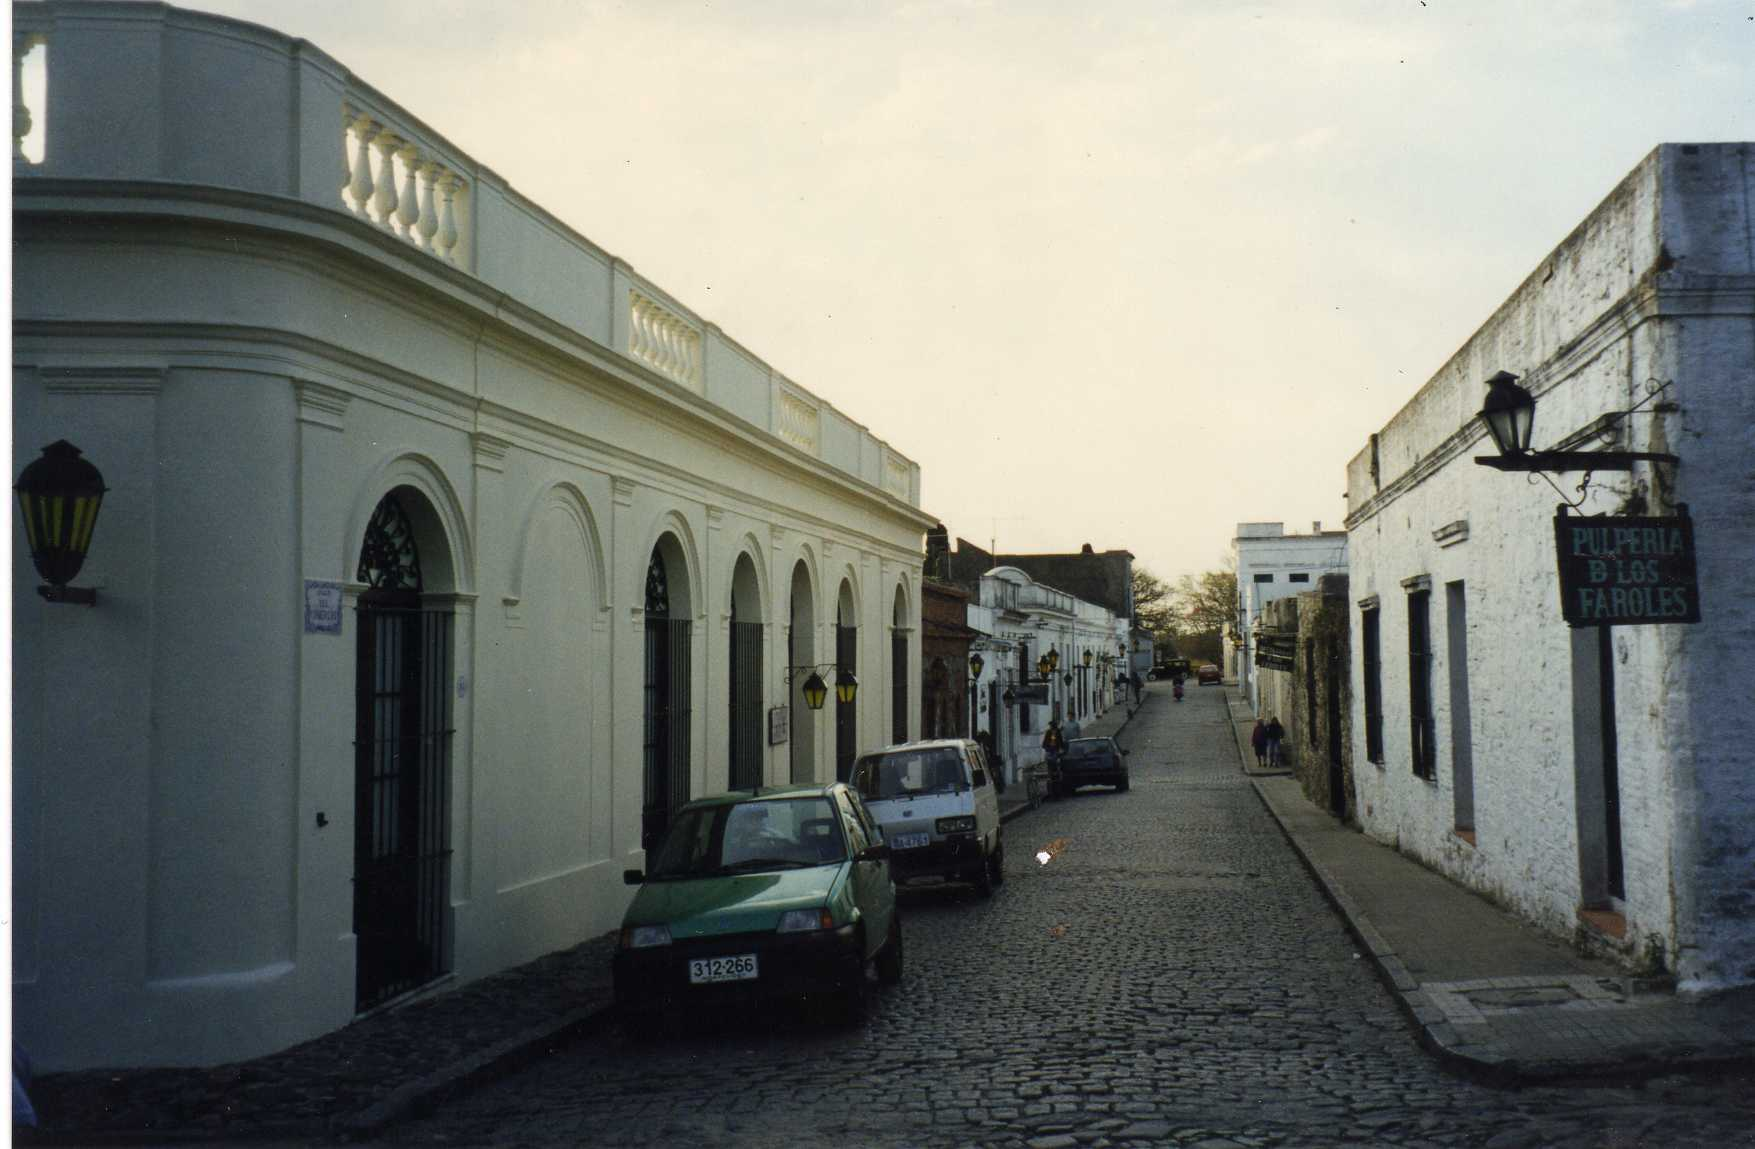 Colonia del Sacramento Uruguay  City new picture : Description Colonia del Sacramento Uruguay